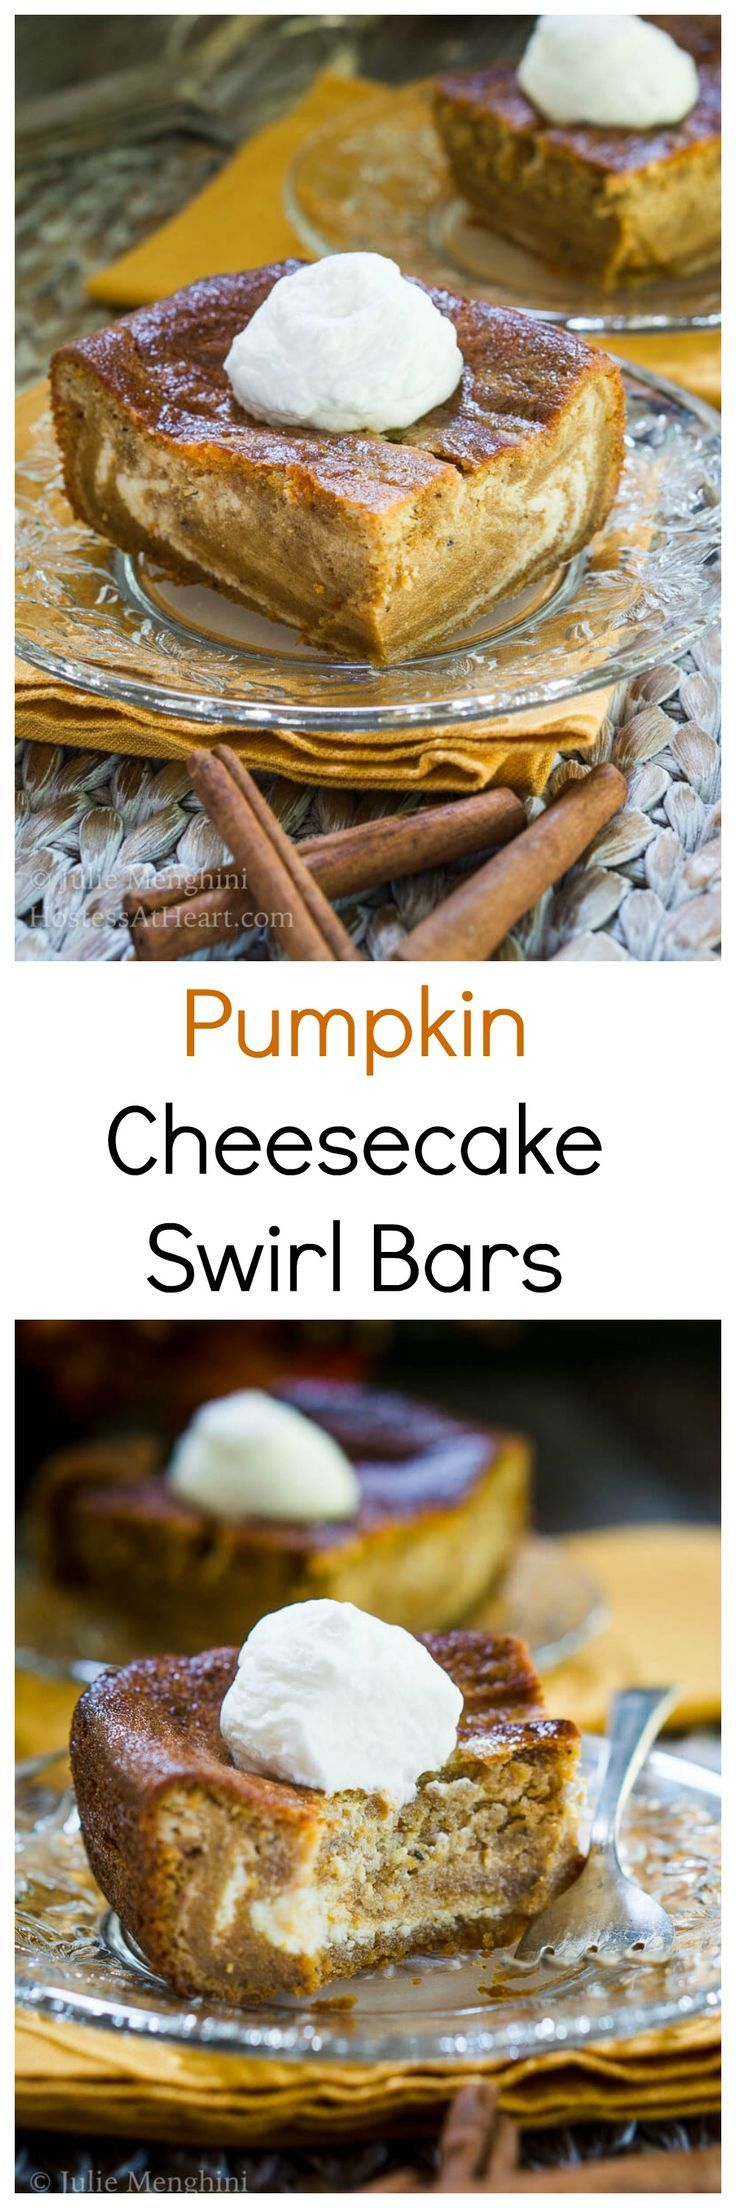 Smooth & Creamy Pumpkin Cheesecake Swirl Bars are the definition of fall and will be a delicious show-stopper at your next get-together or Holiday dinner! | HostessAtHeart.com via @HostessAtHeart